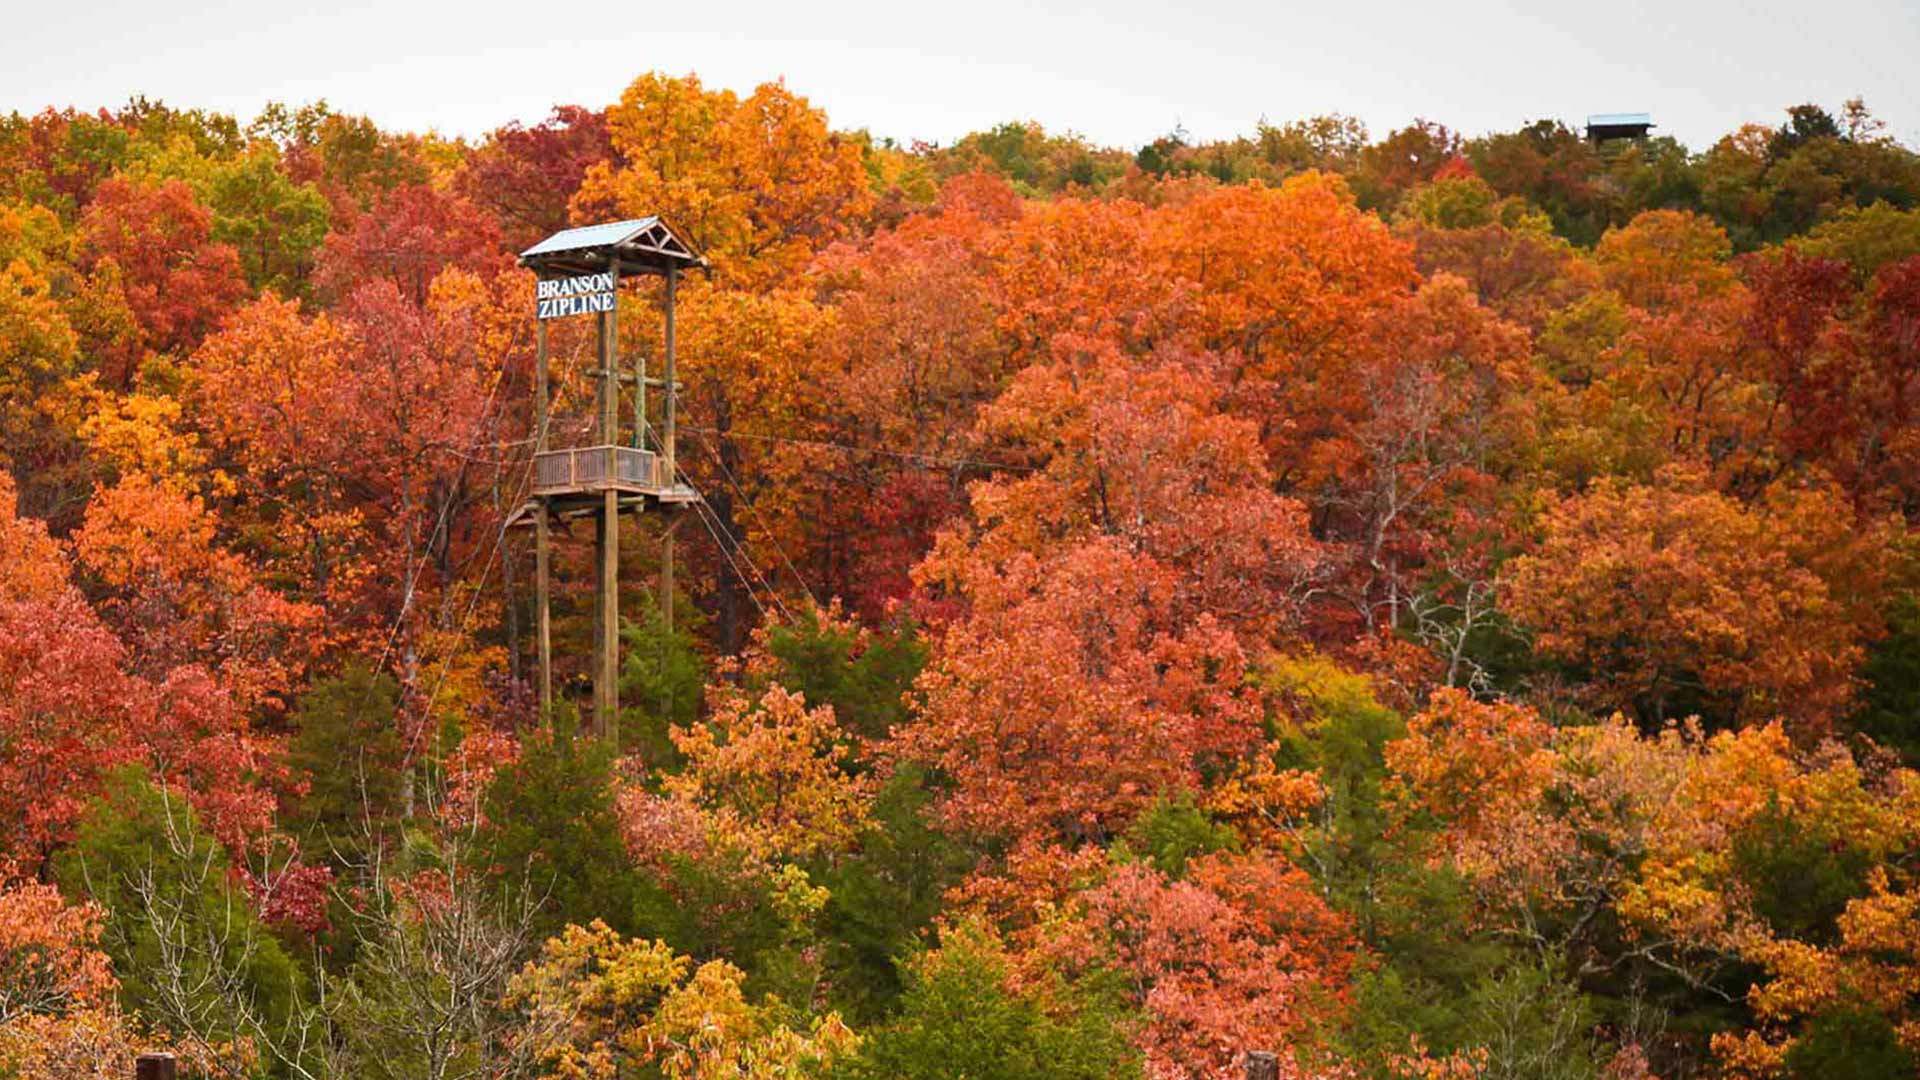 A tower at Branson Zipline surrounded by trees with orange leaves